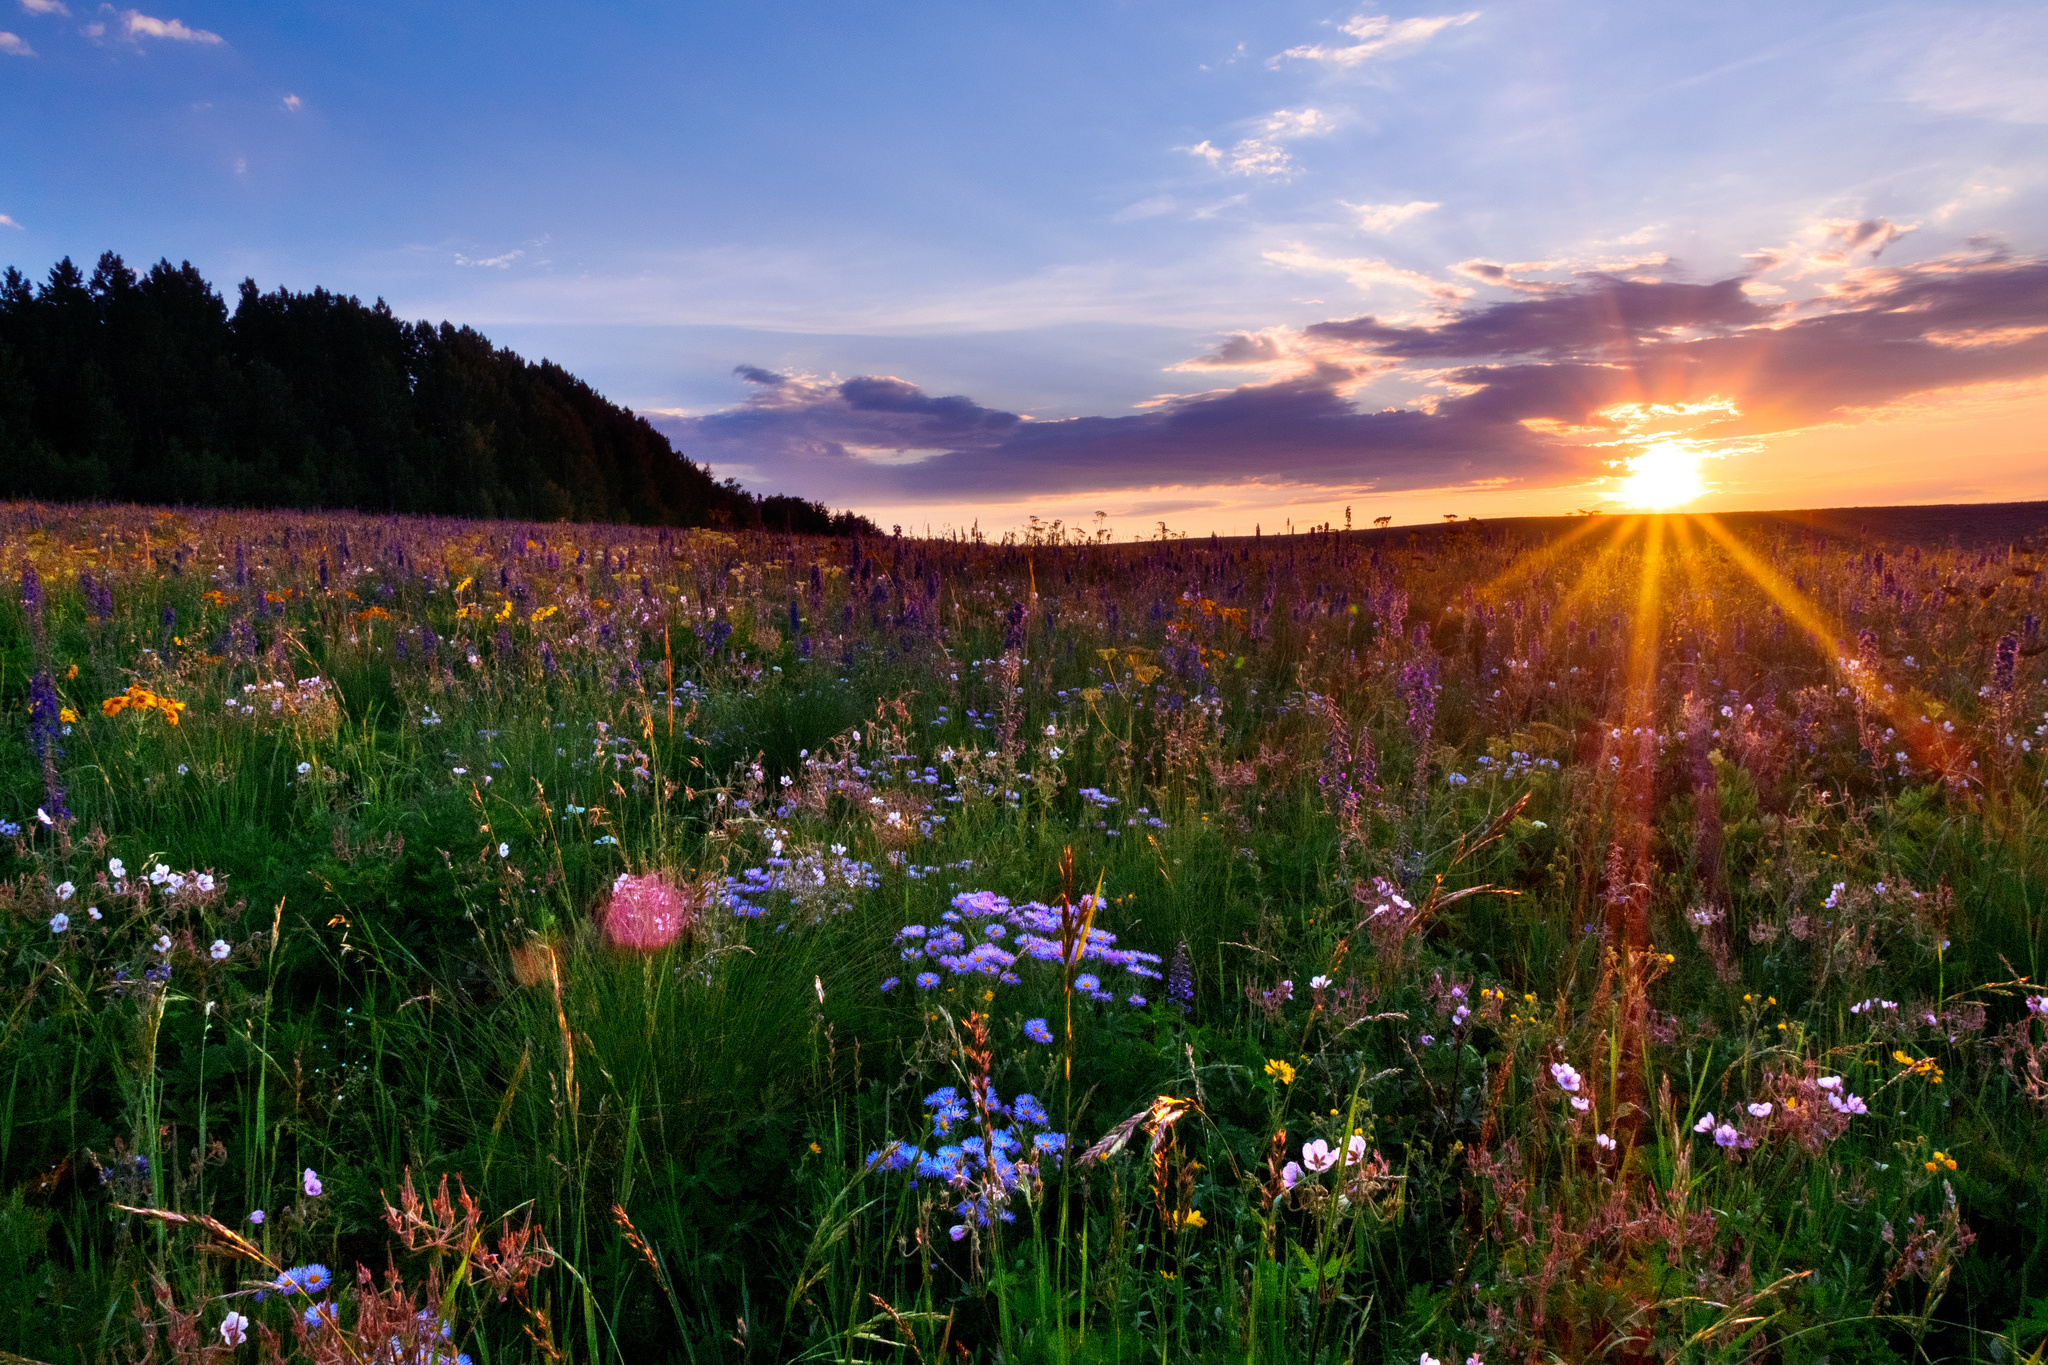 Statues Of Gods Colorado Meadow Sunset Flowers F Wallpaper 2048x1365